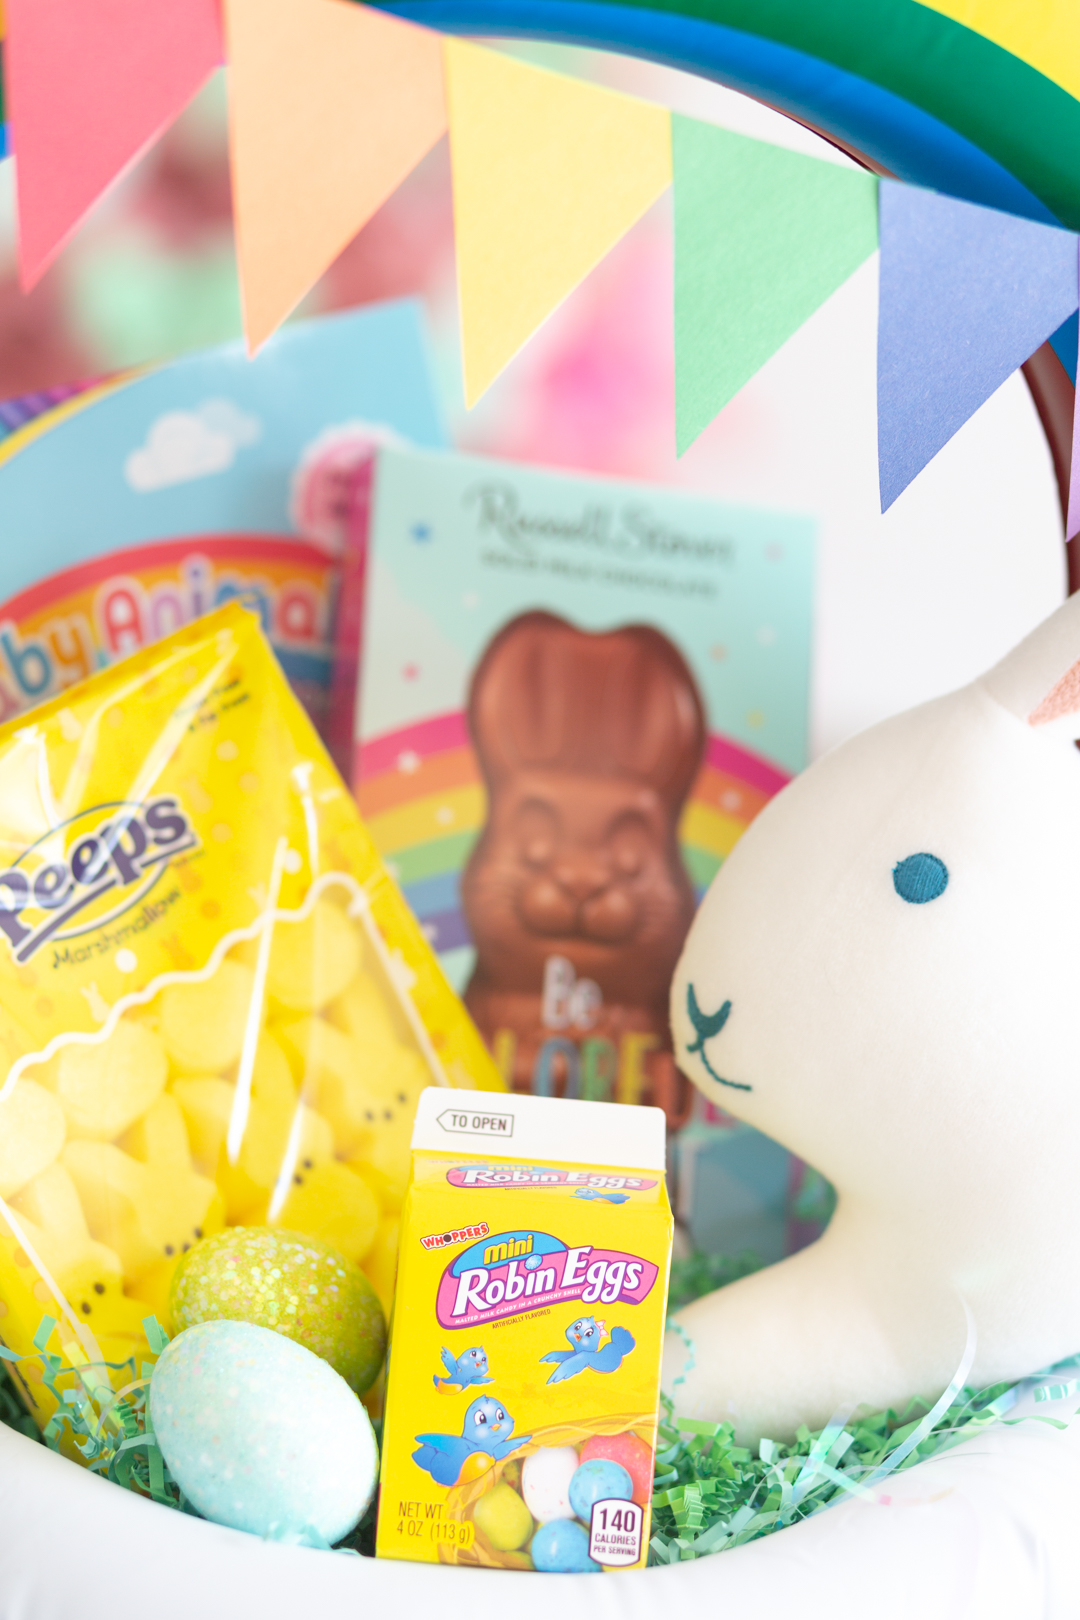 up close view of easter basket fillers including robin's eggs, yellow peeps bunnies, chocolate bunny and stuffed bunny pillow. Rainbow pendent banner made with construction paper.